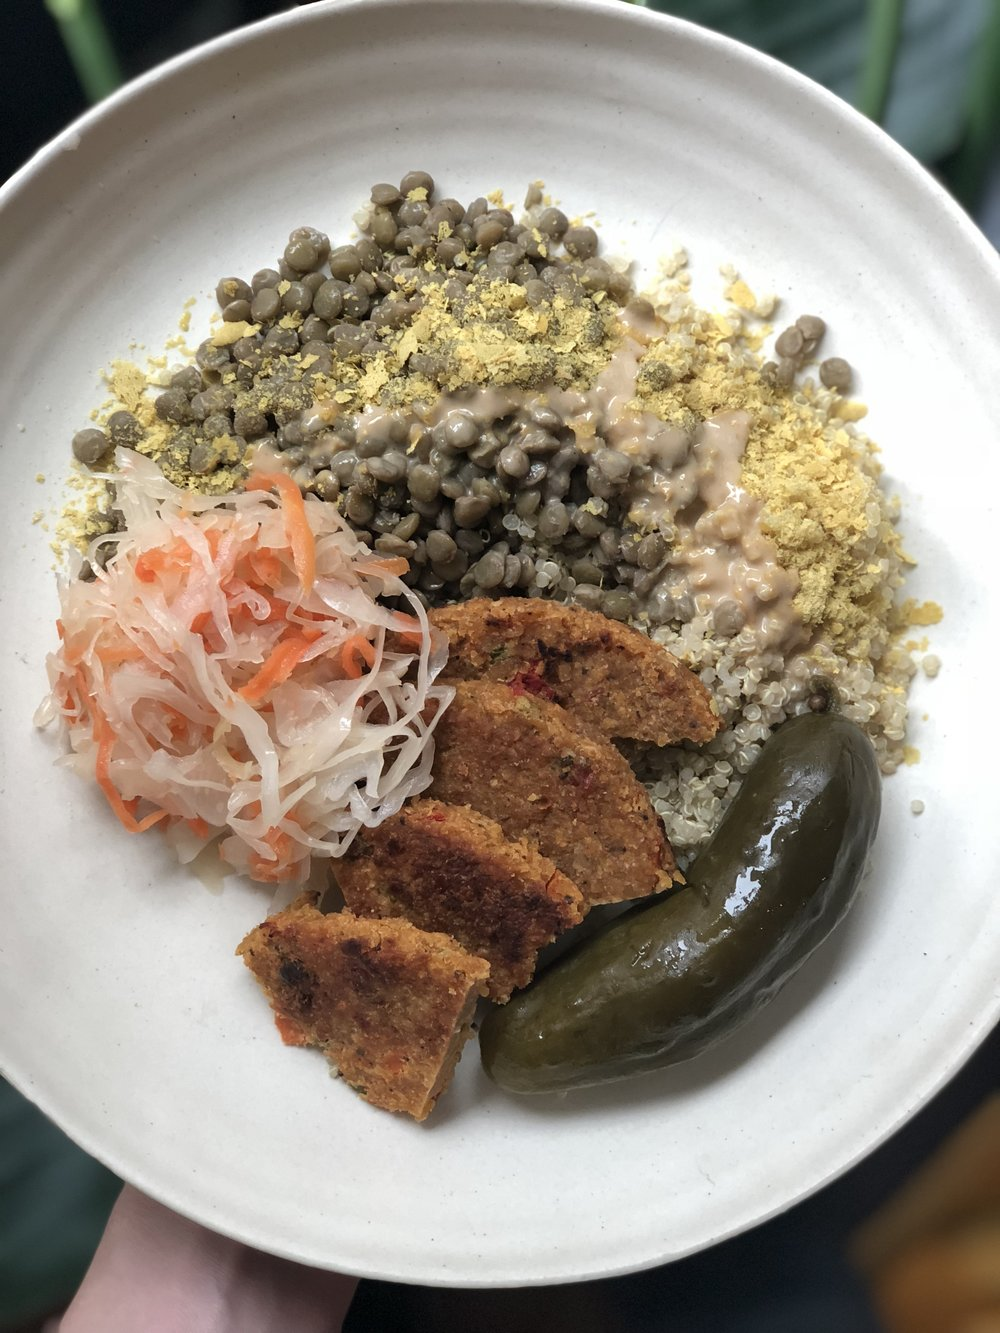 sauerkraut, bubbie's pickle, big mountain veggie patty, lentils, quinoa, nutritional yeast